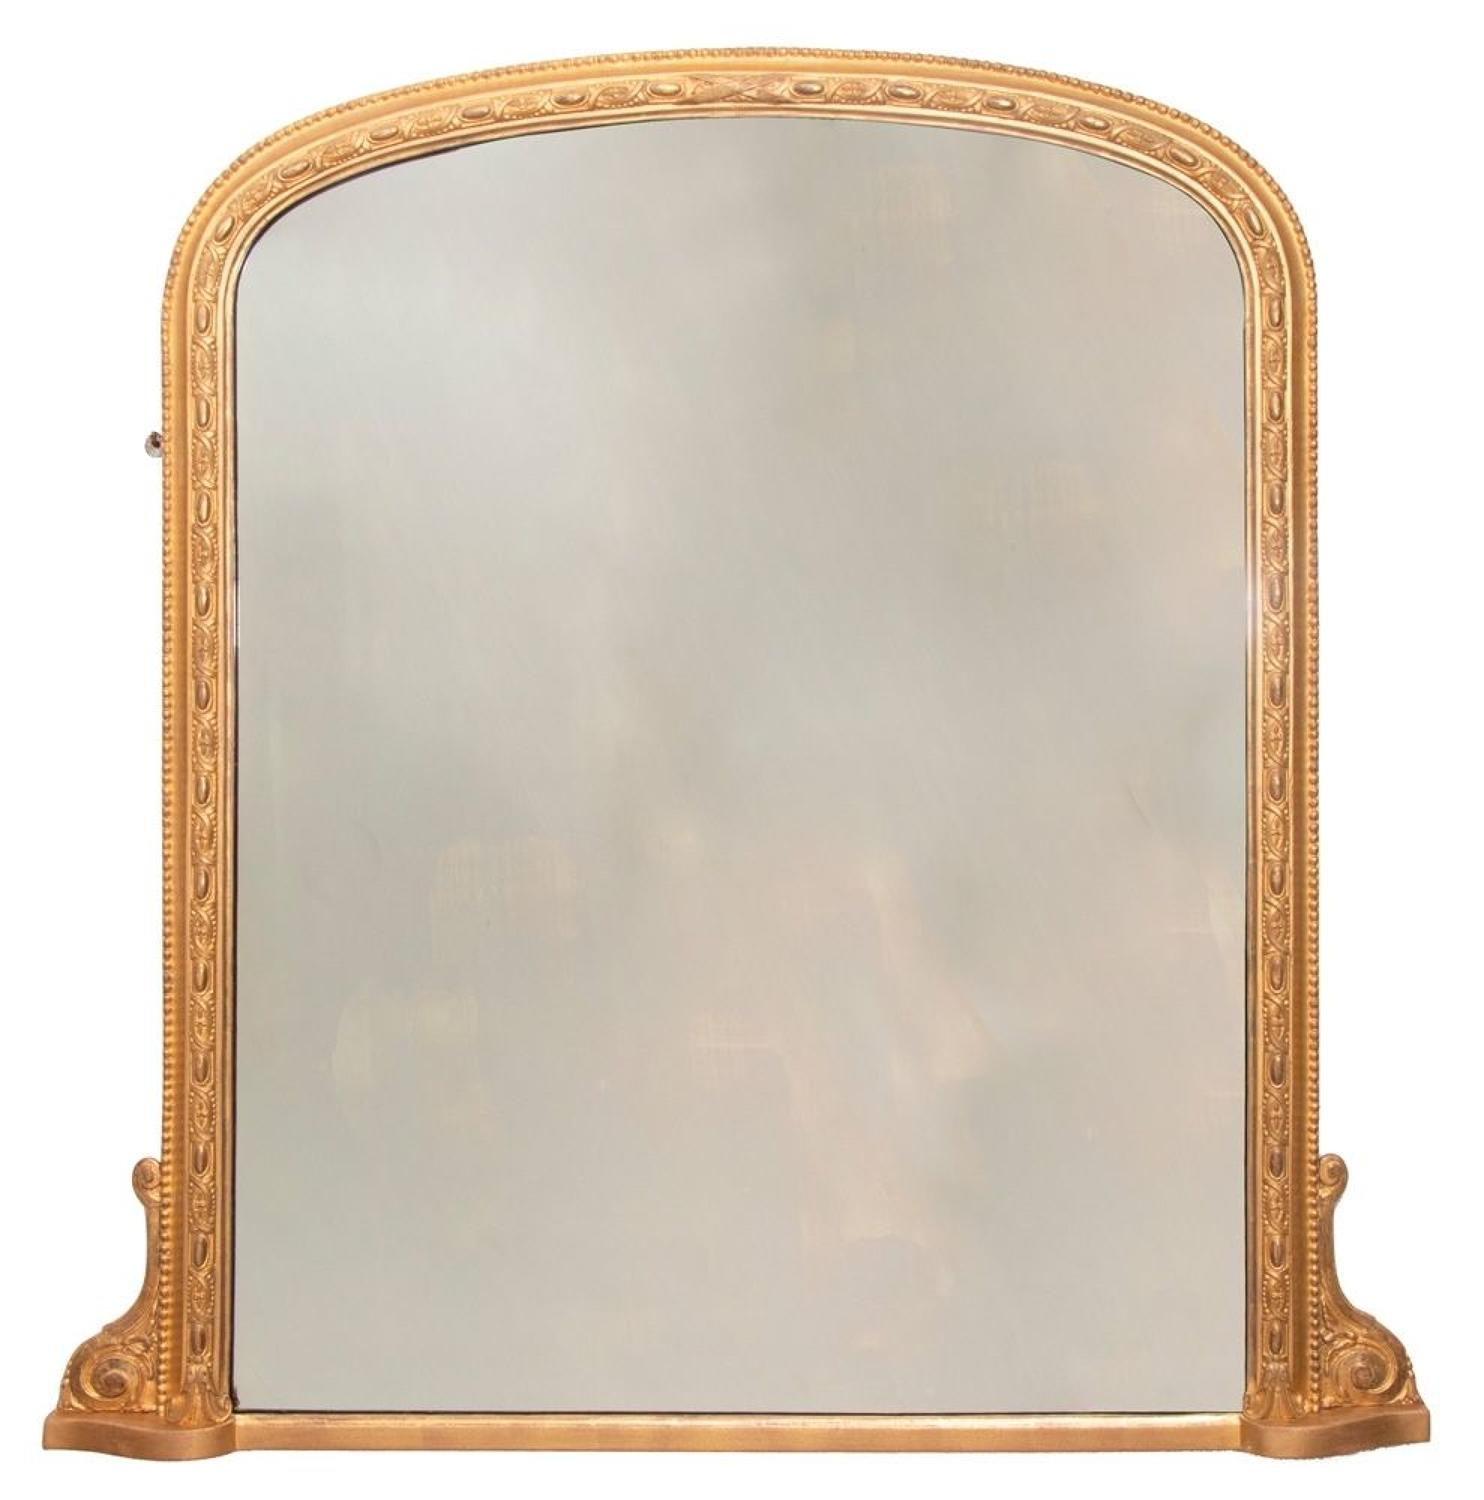 English Antique Giltwood Mirror c.1890